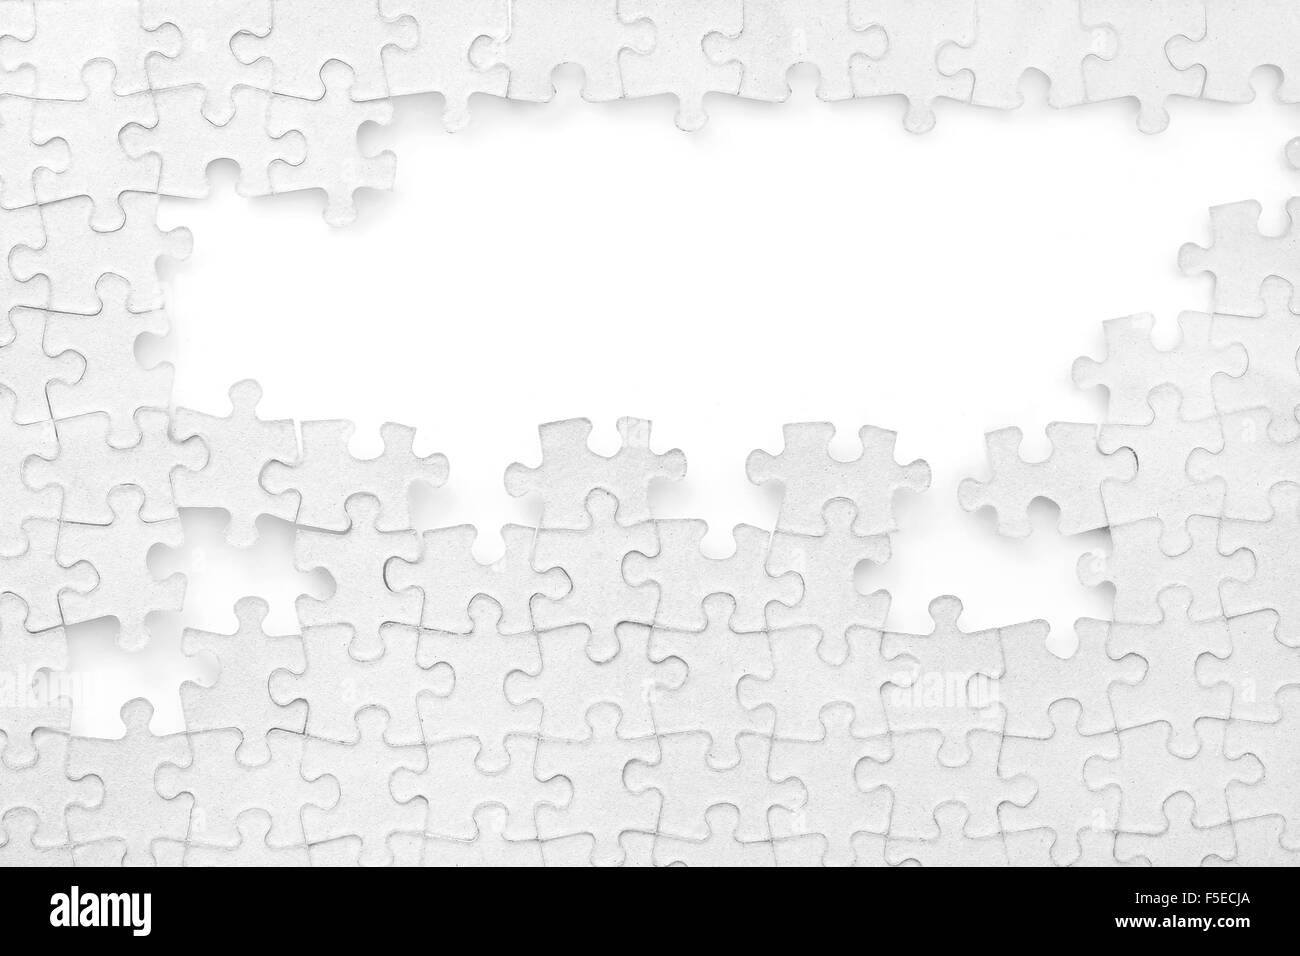 incomplete puzzle background on white - Stock Image